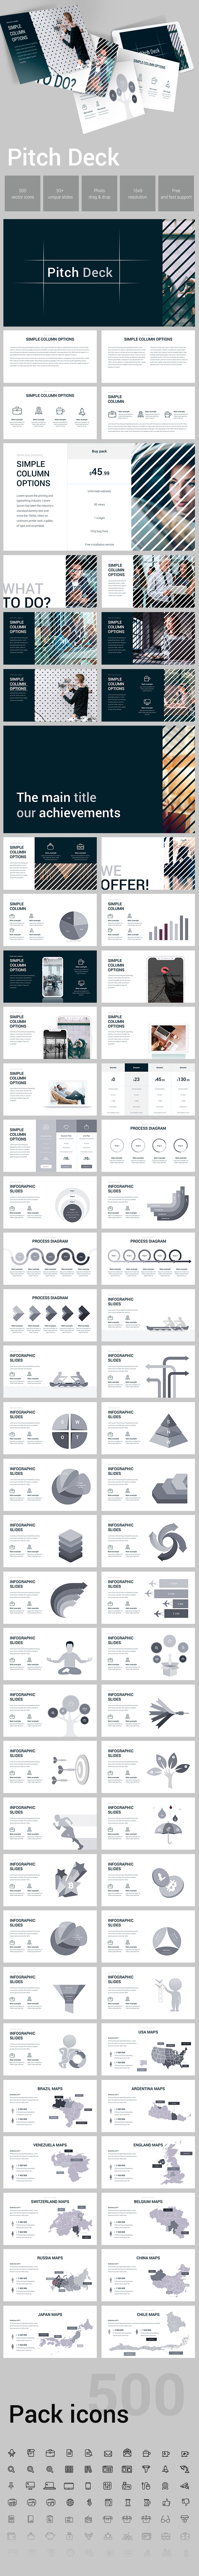 Pitch Deck Powerpoint Template - Pitch Deck PowerPoint Templates